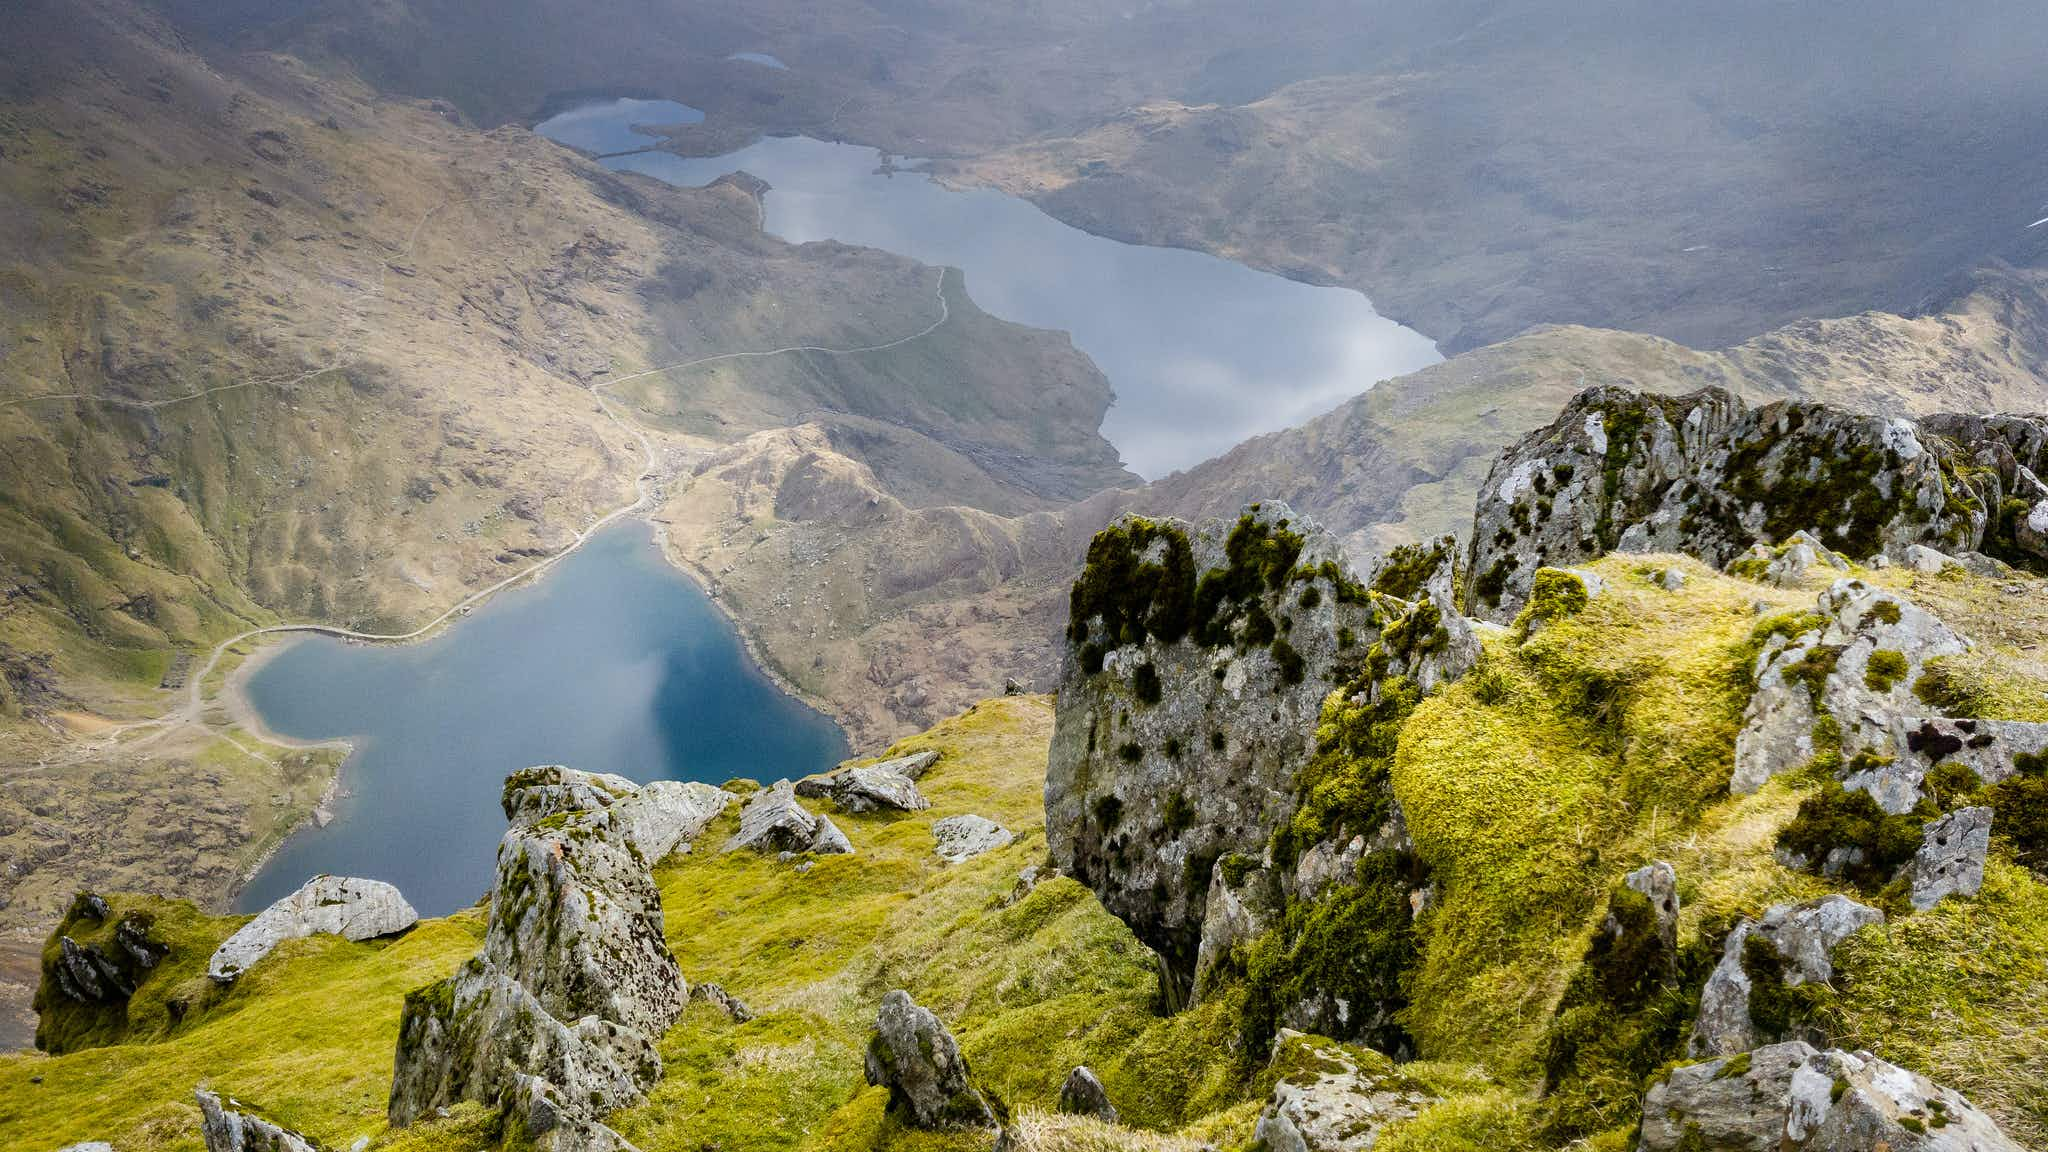 Snowdonia, the Highlands and Stonehenge provide some of the most spectacular views in the UK